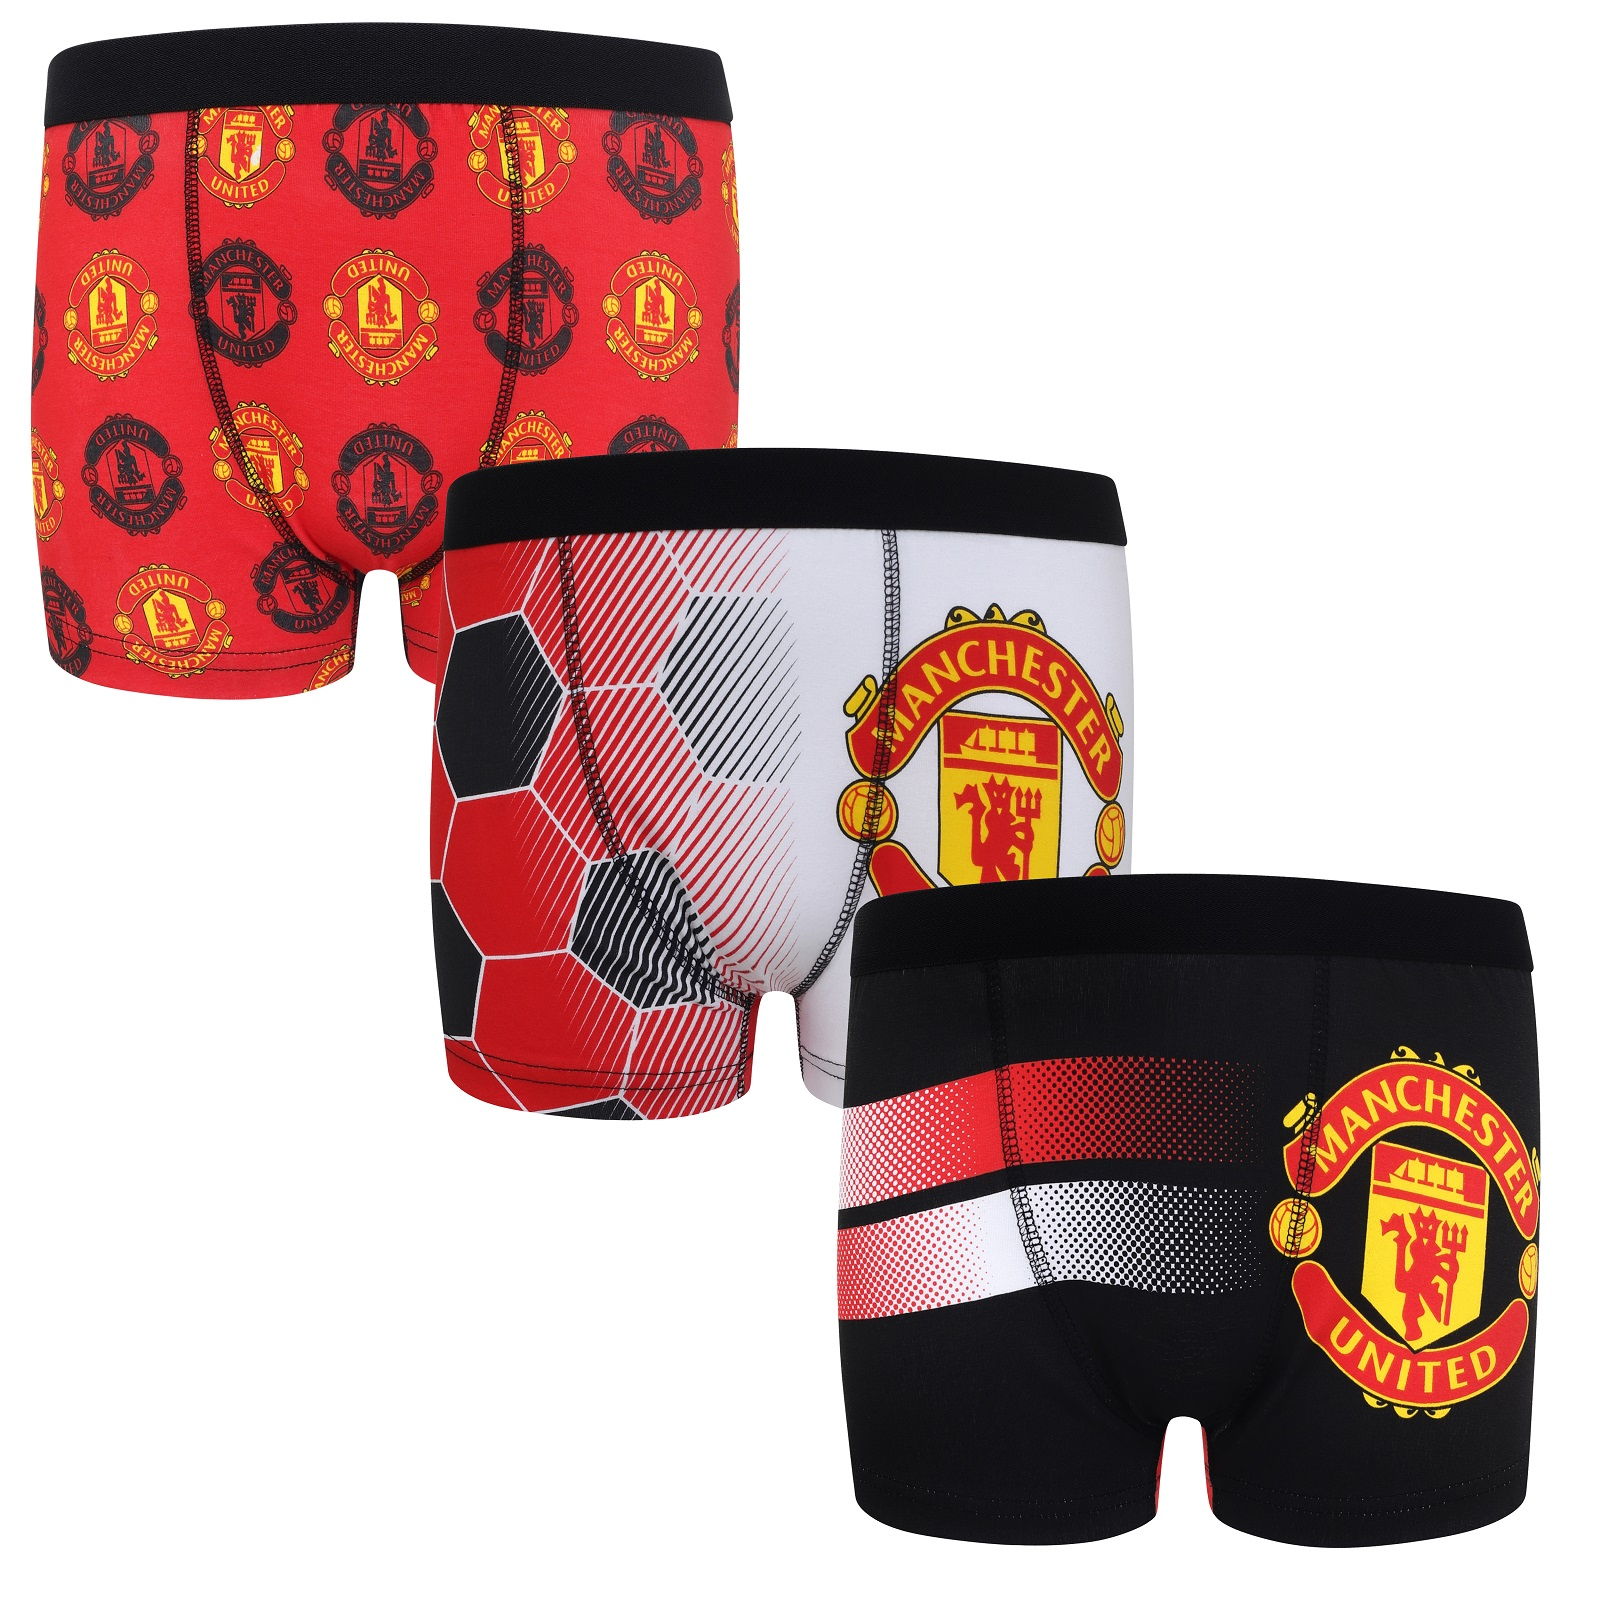 official boys official merchandise 1 pack chelsea trunks boxer shorts just £2.99